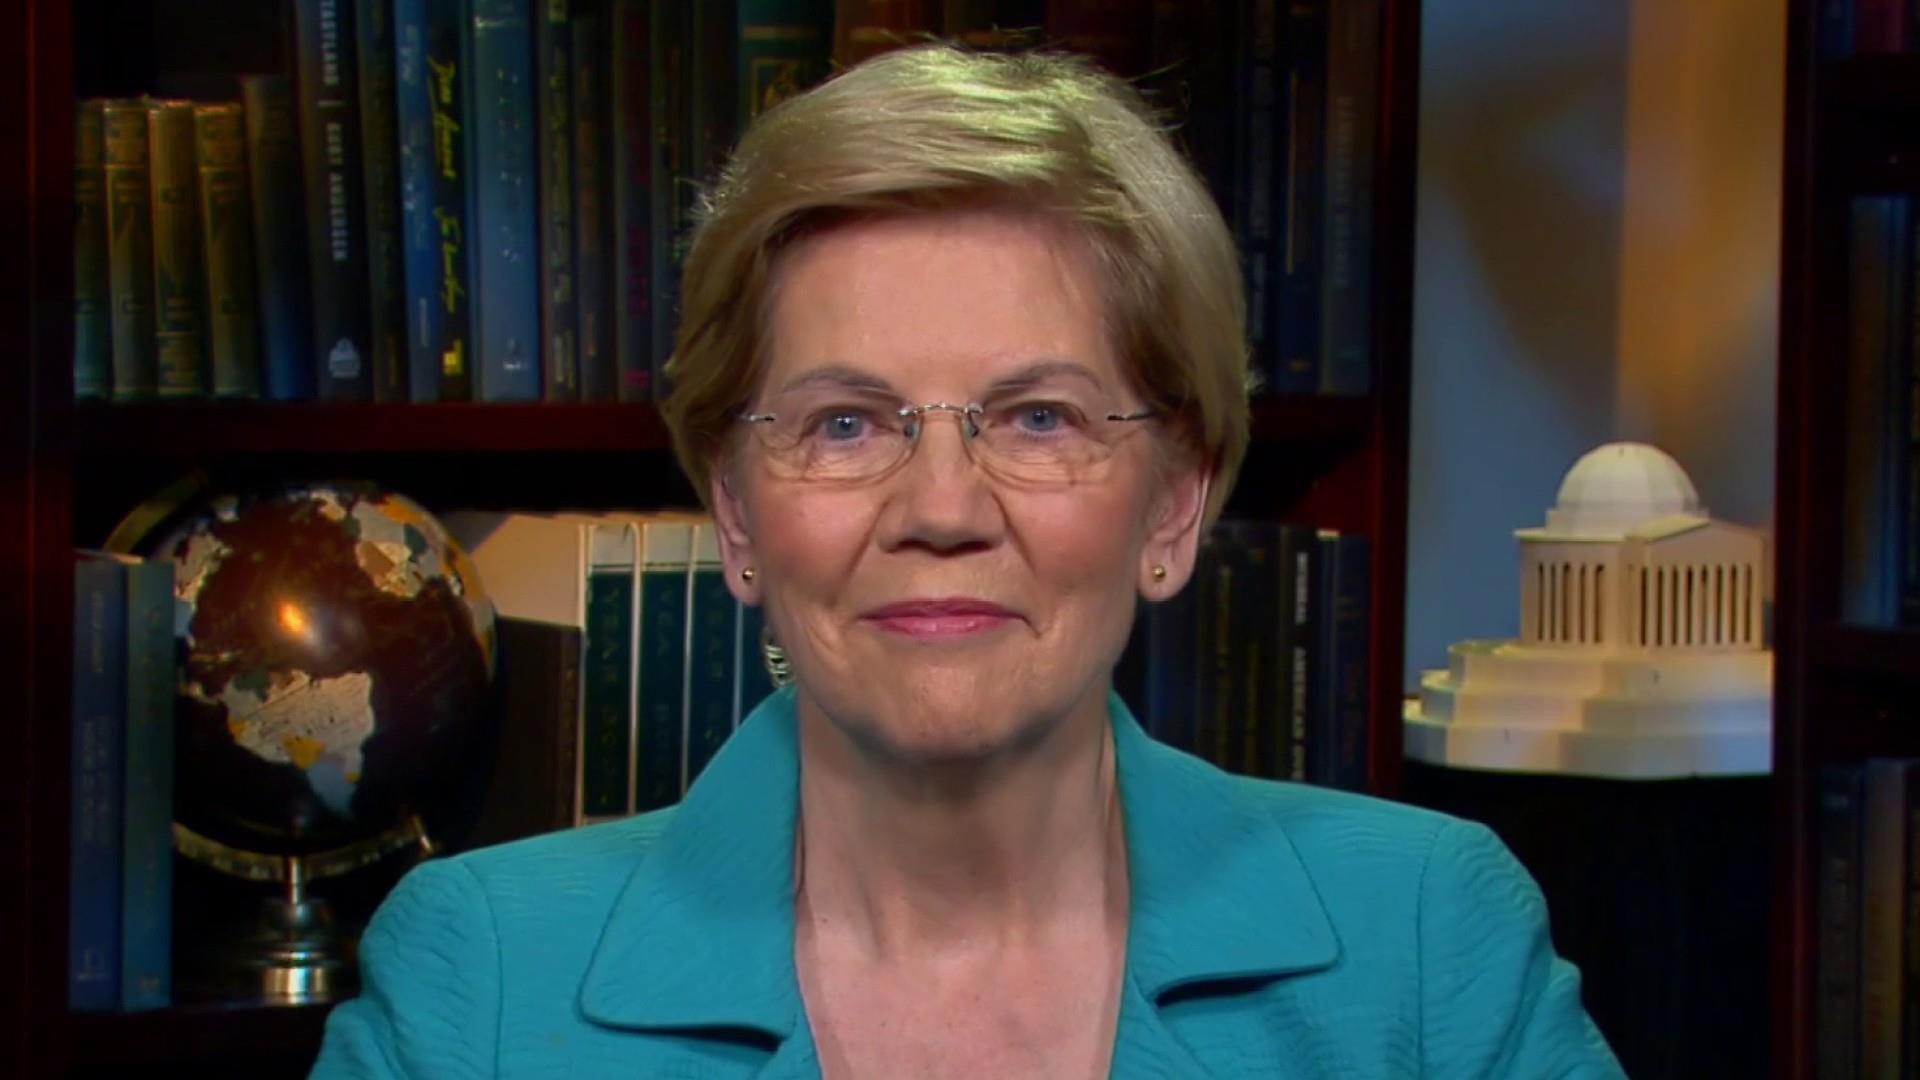 Warren after reading Mueller Report: time to open impeachment proceedings